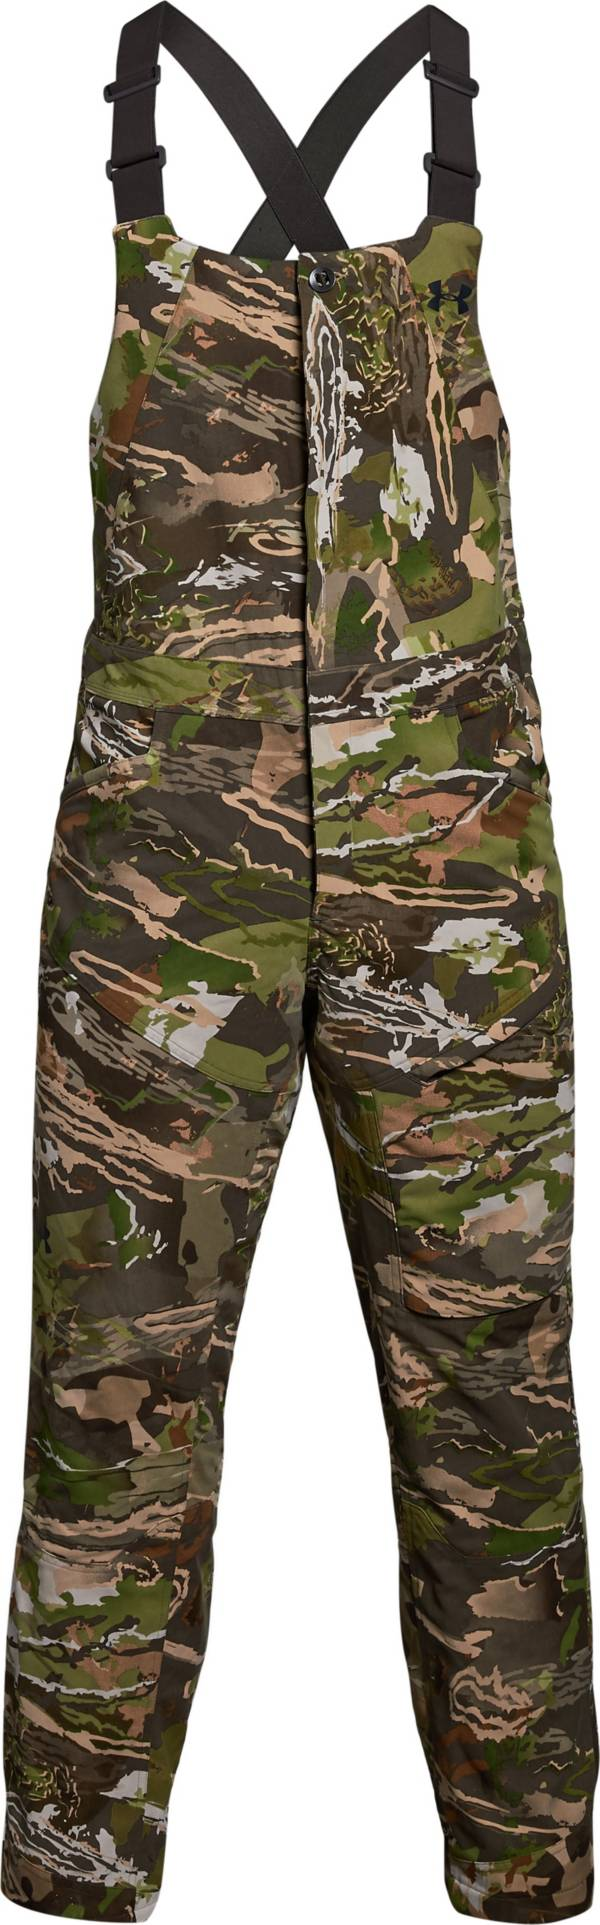 Under Armour Men's Grit Hunting Bibs product image